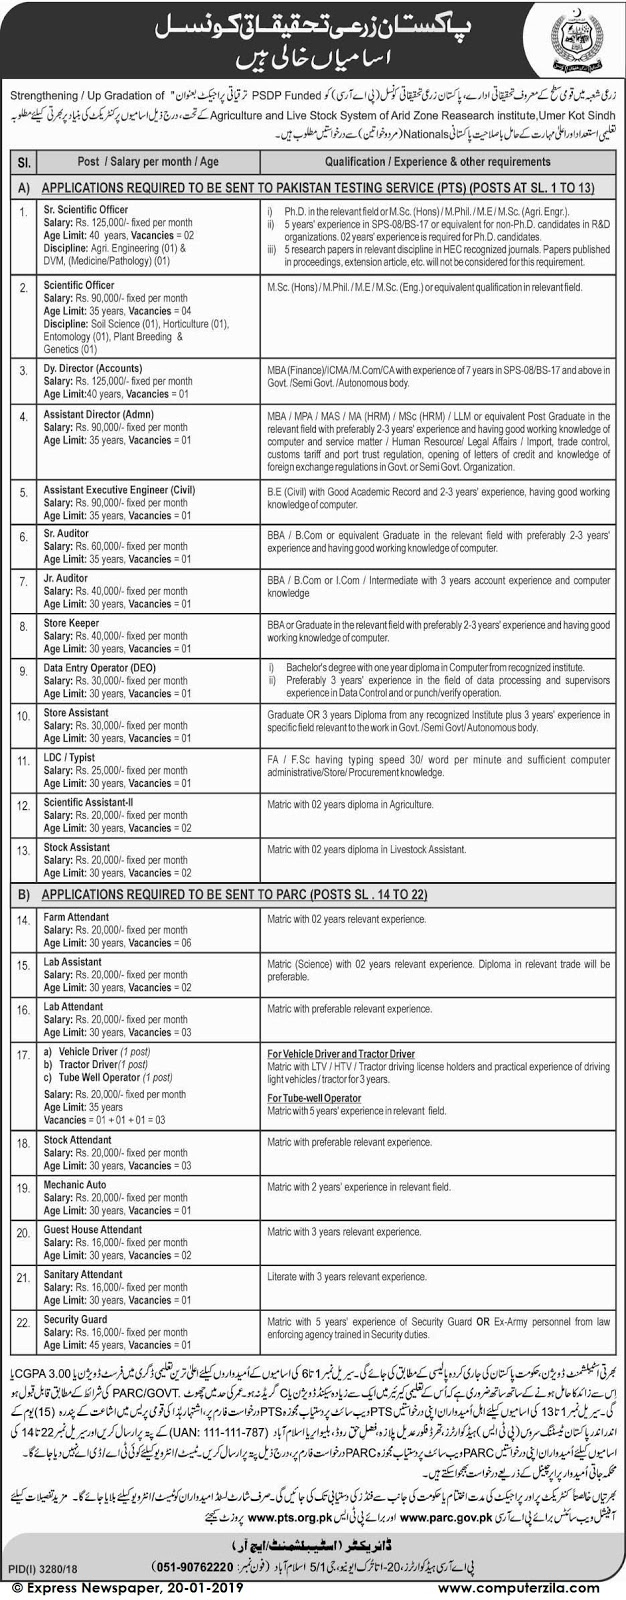 Situations Vacant  at Pakistan Agricultural Research Council